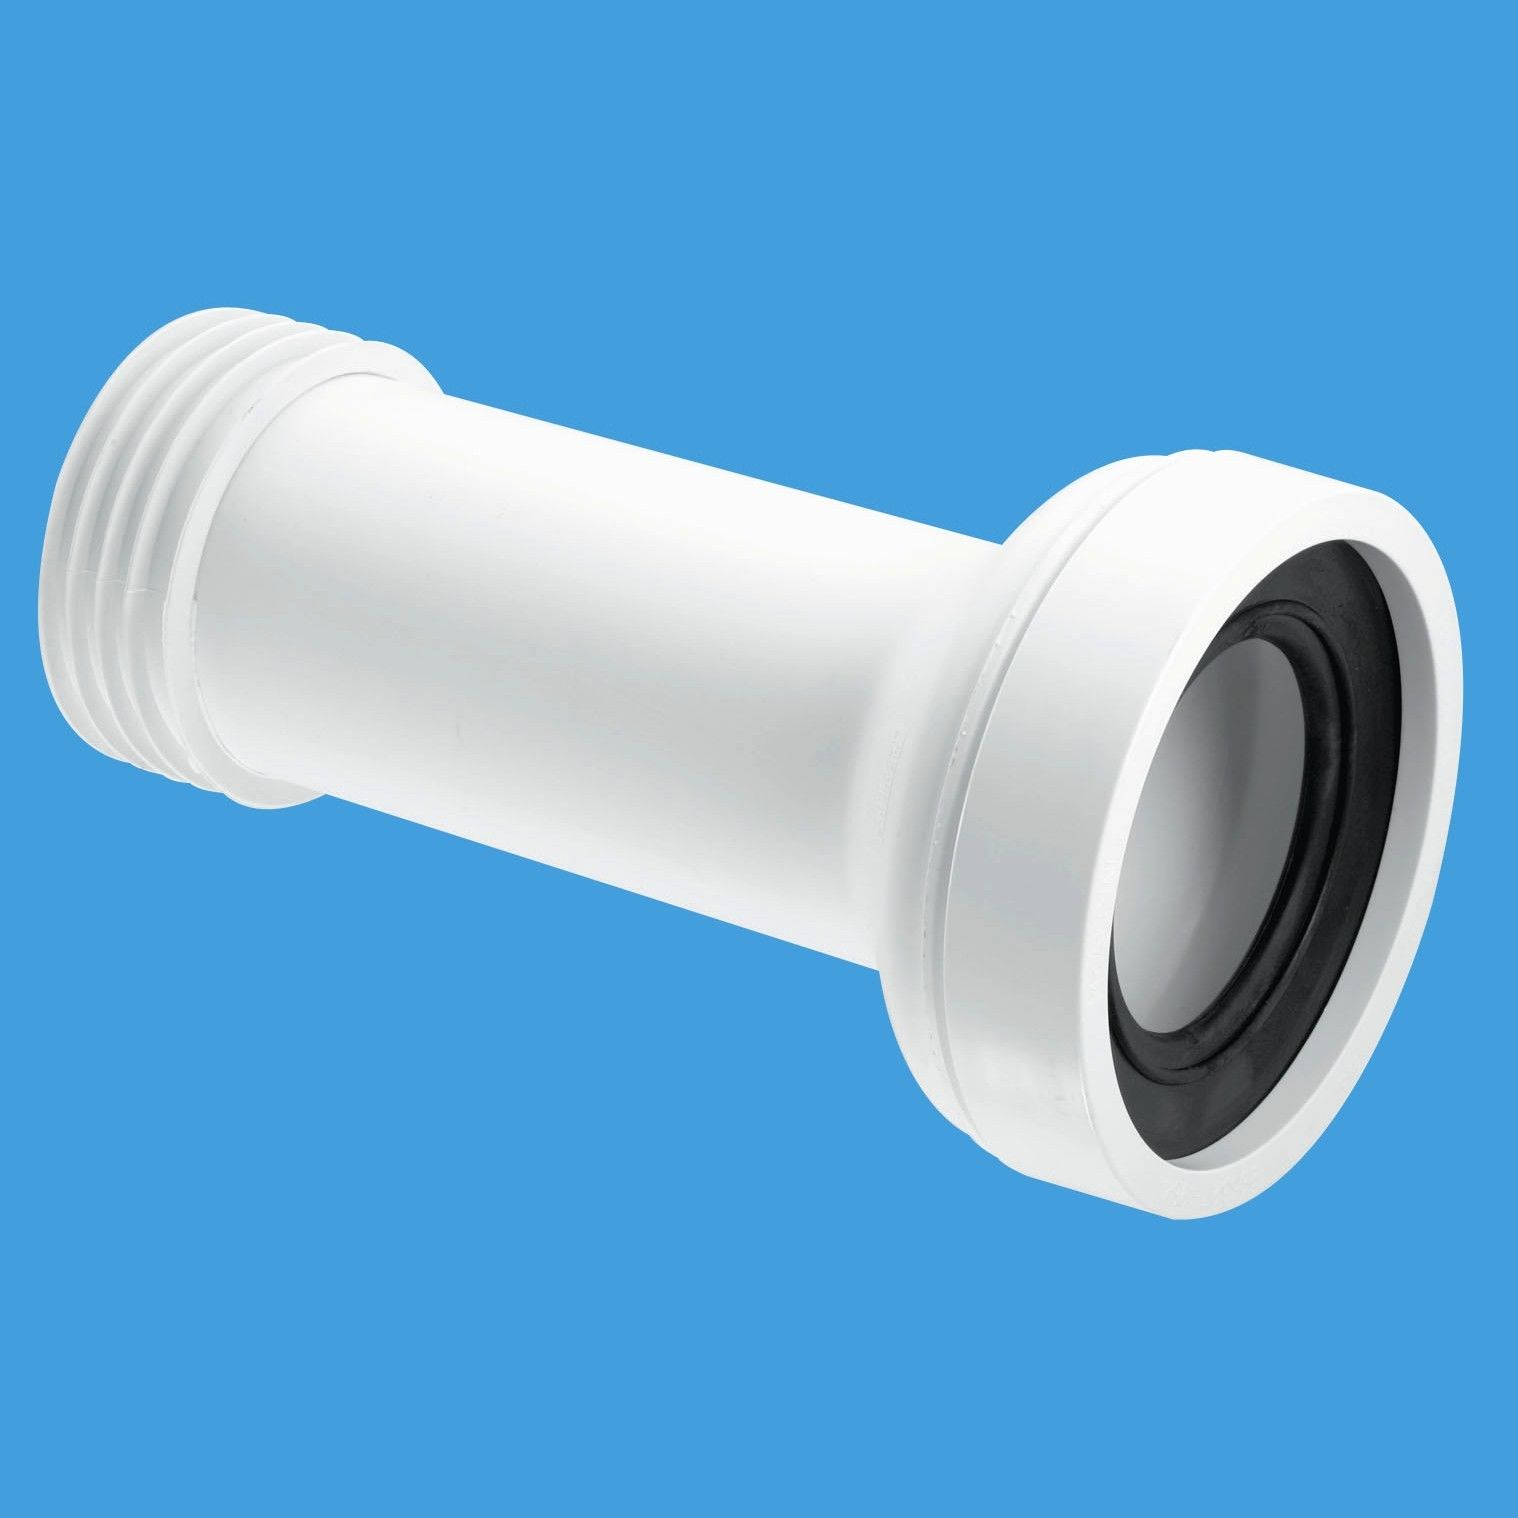 Buy mcalpine wc adjustable toilet pan connector waste for 90mm soil pipe fittings